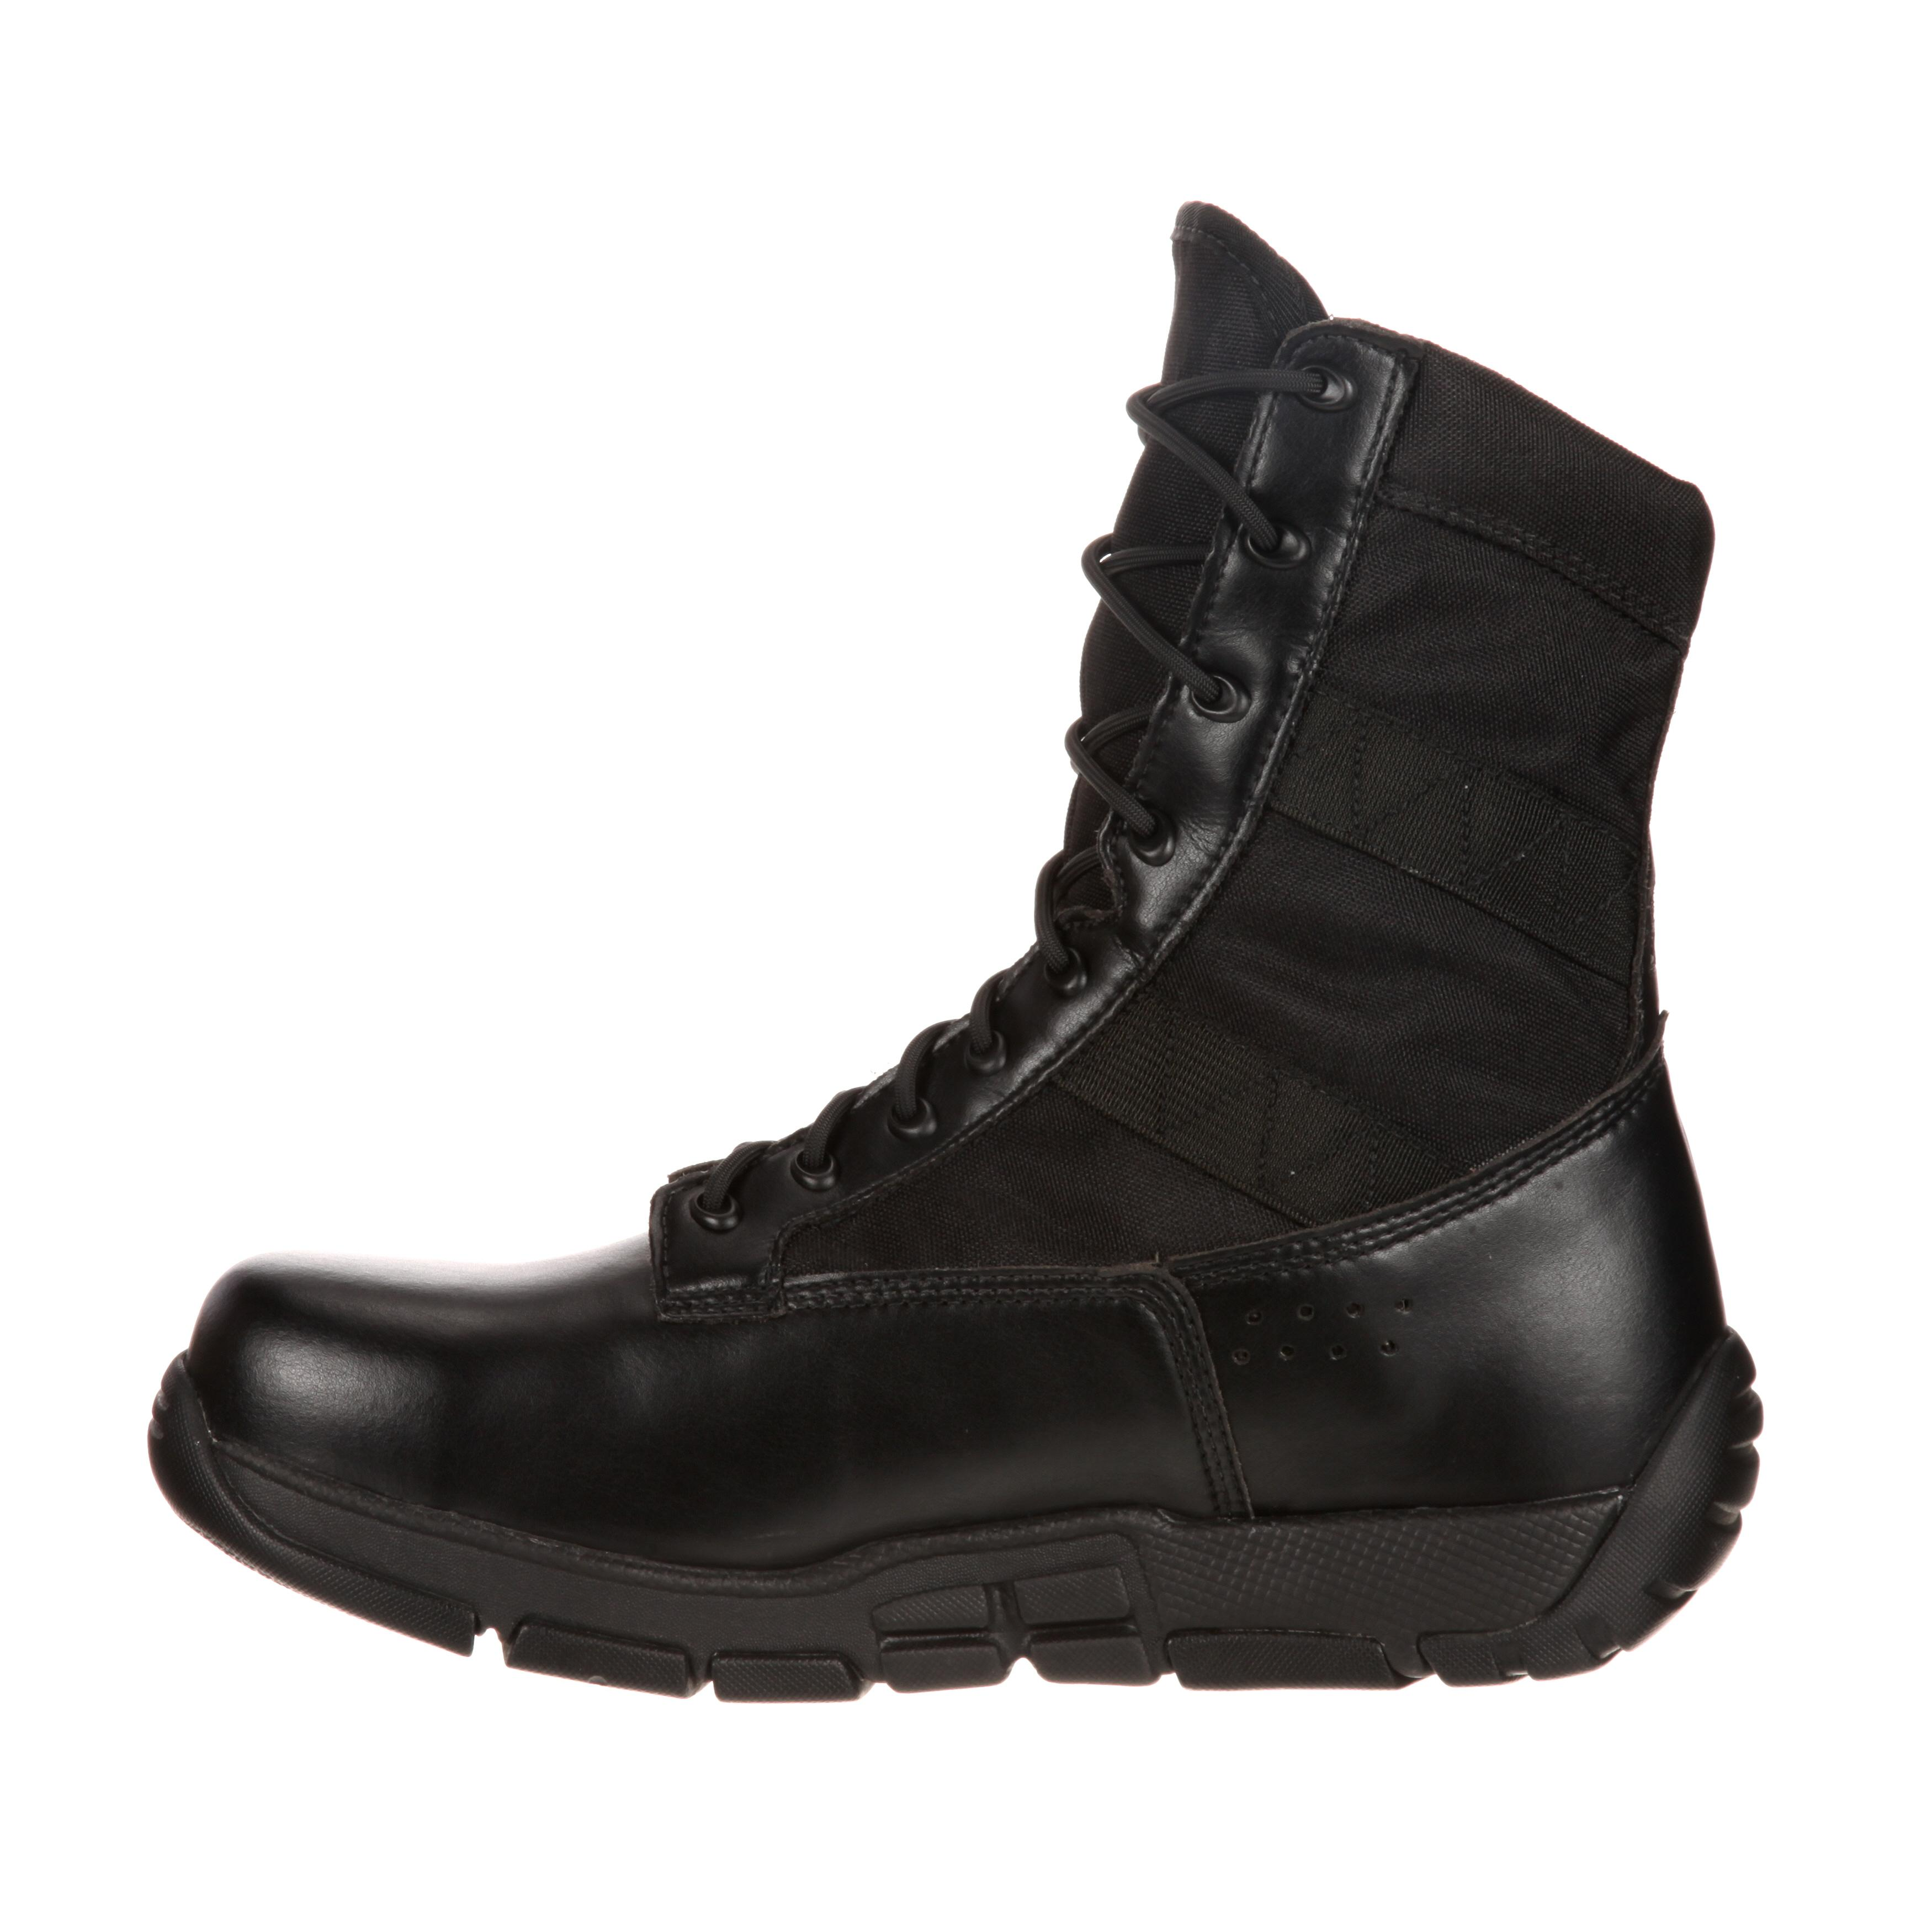 steel boots comforter wisely toe comfortable choose composite work vs caps bootmoodfoot most